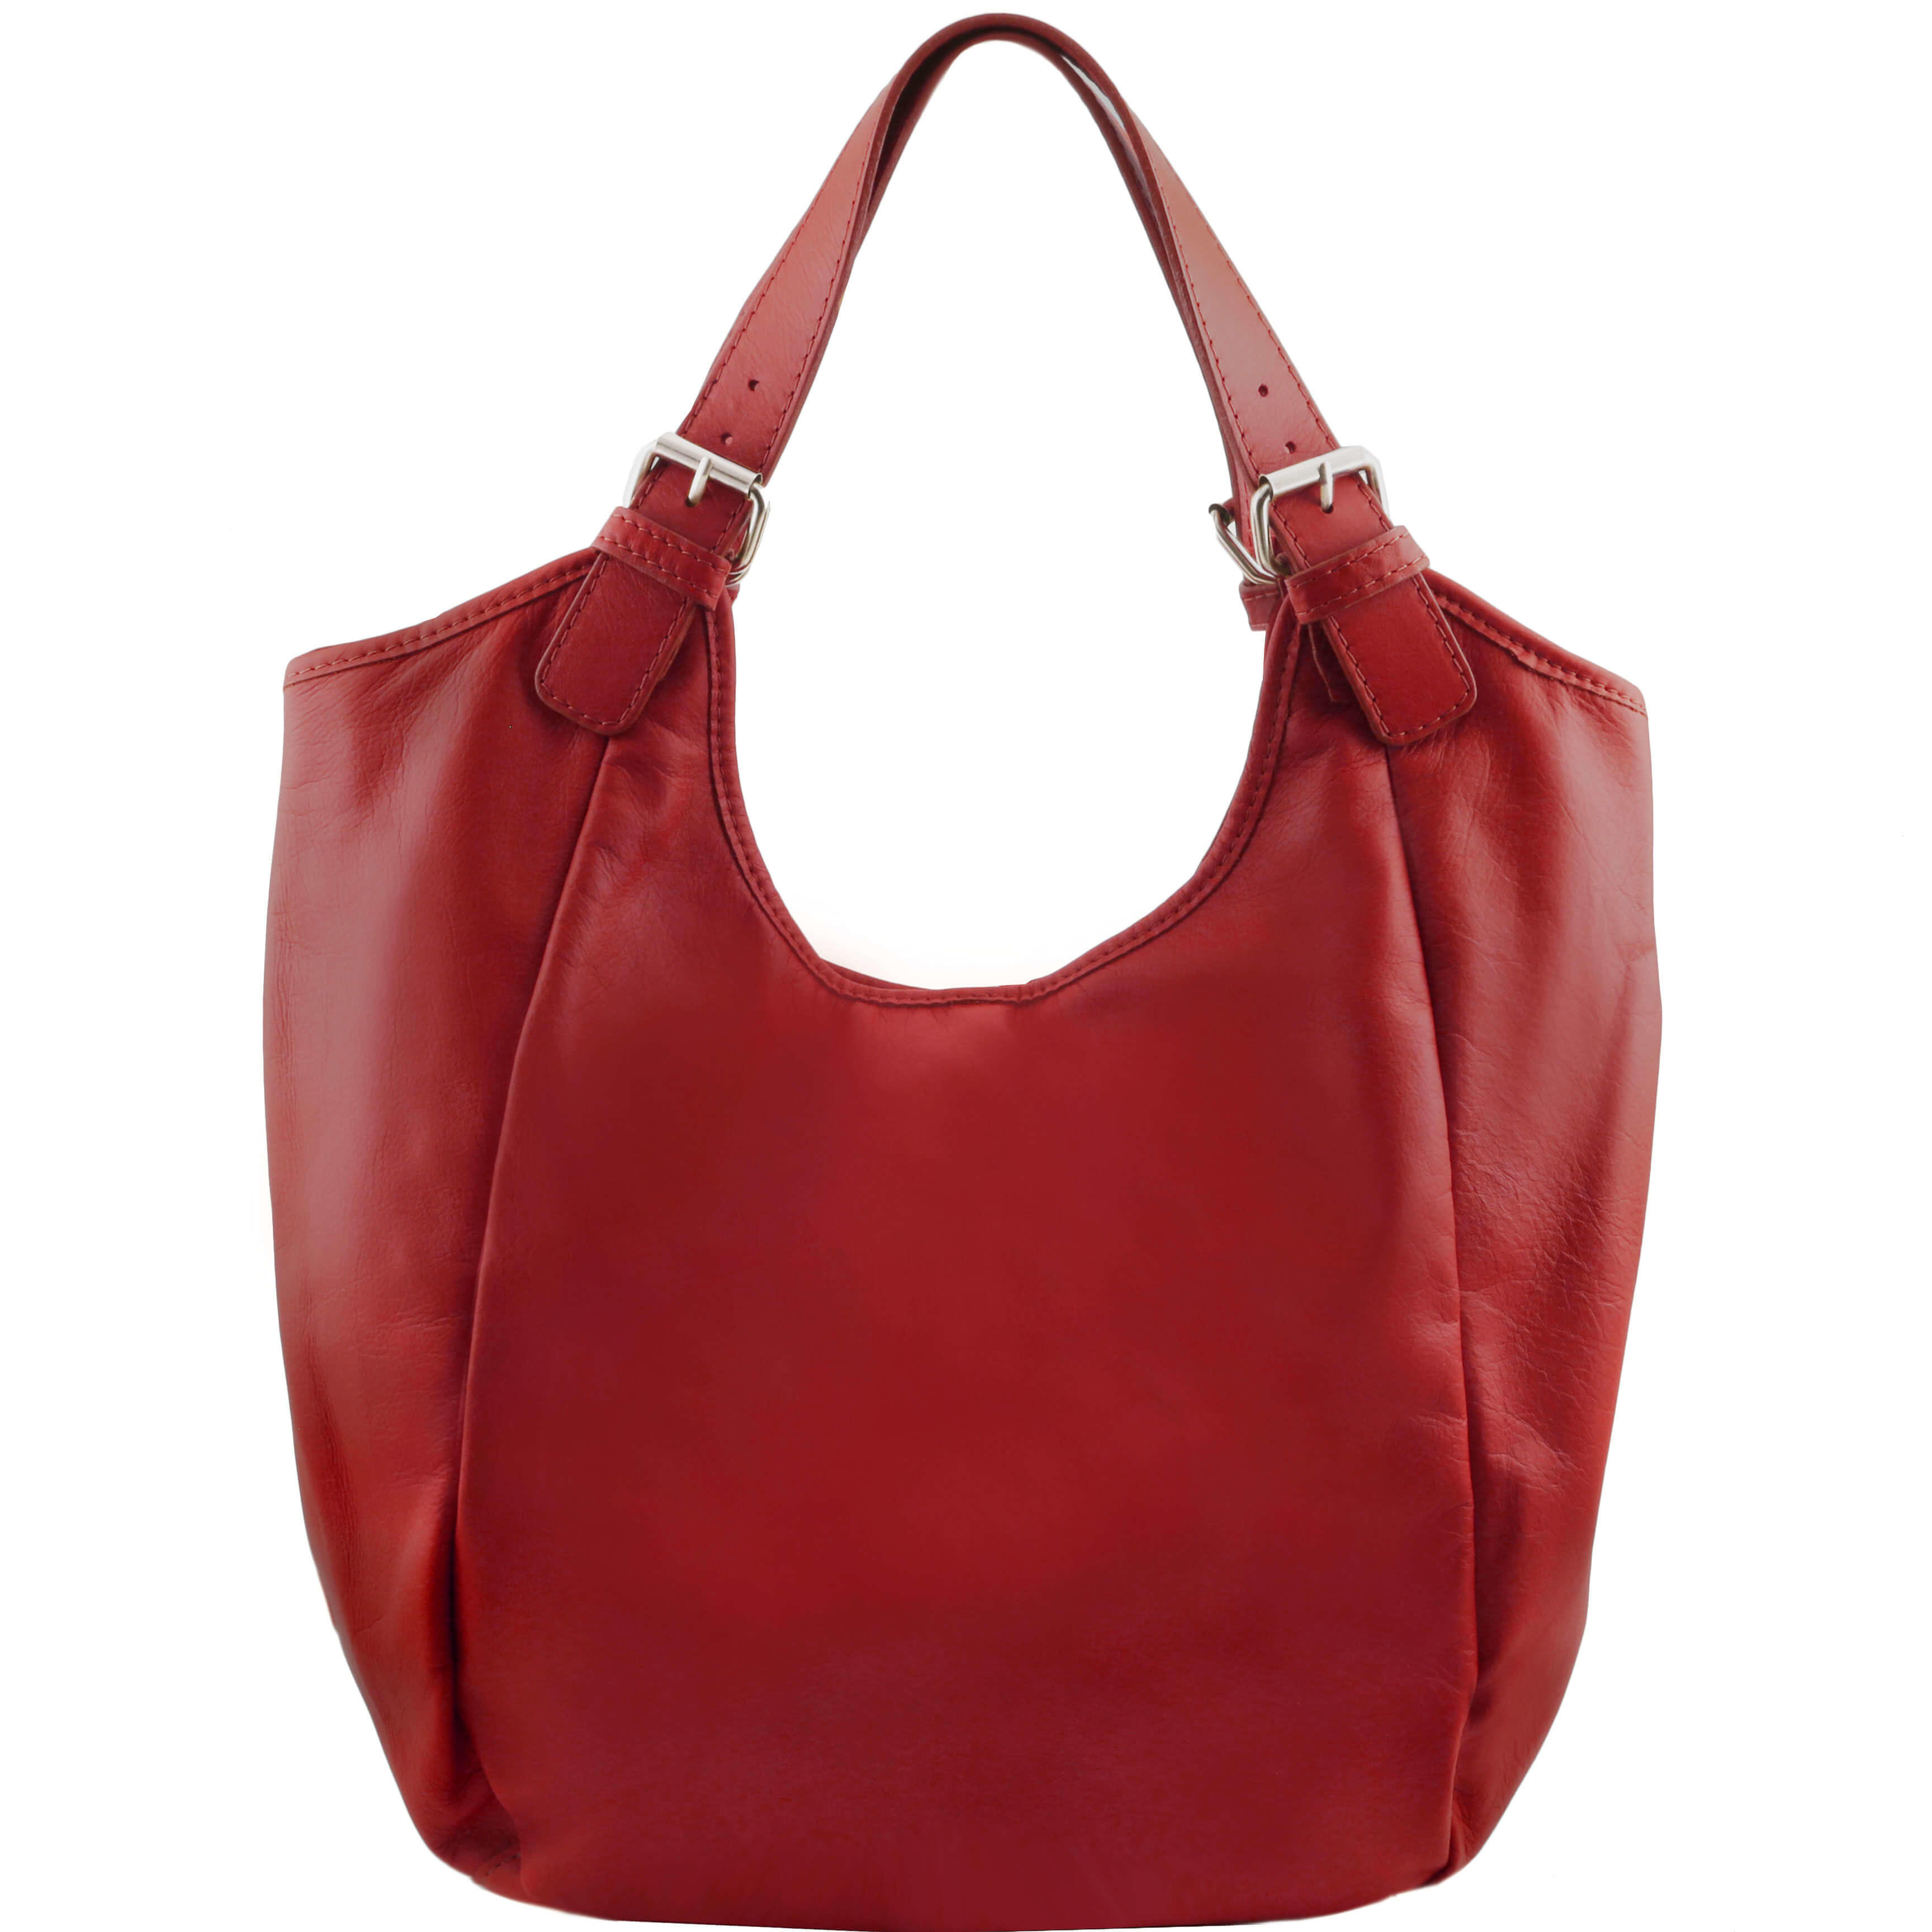 TL141357 Gina Classic Leather-Hand-Shoulder-Tote-Hobo-Bag Red